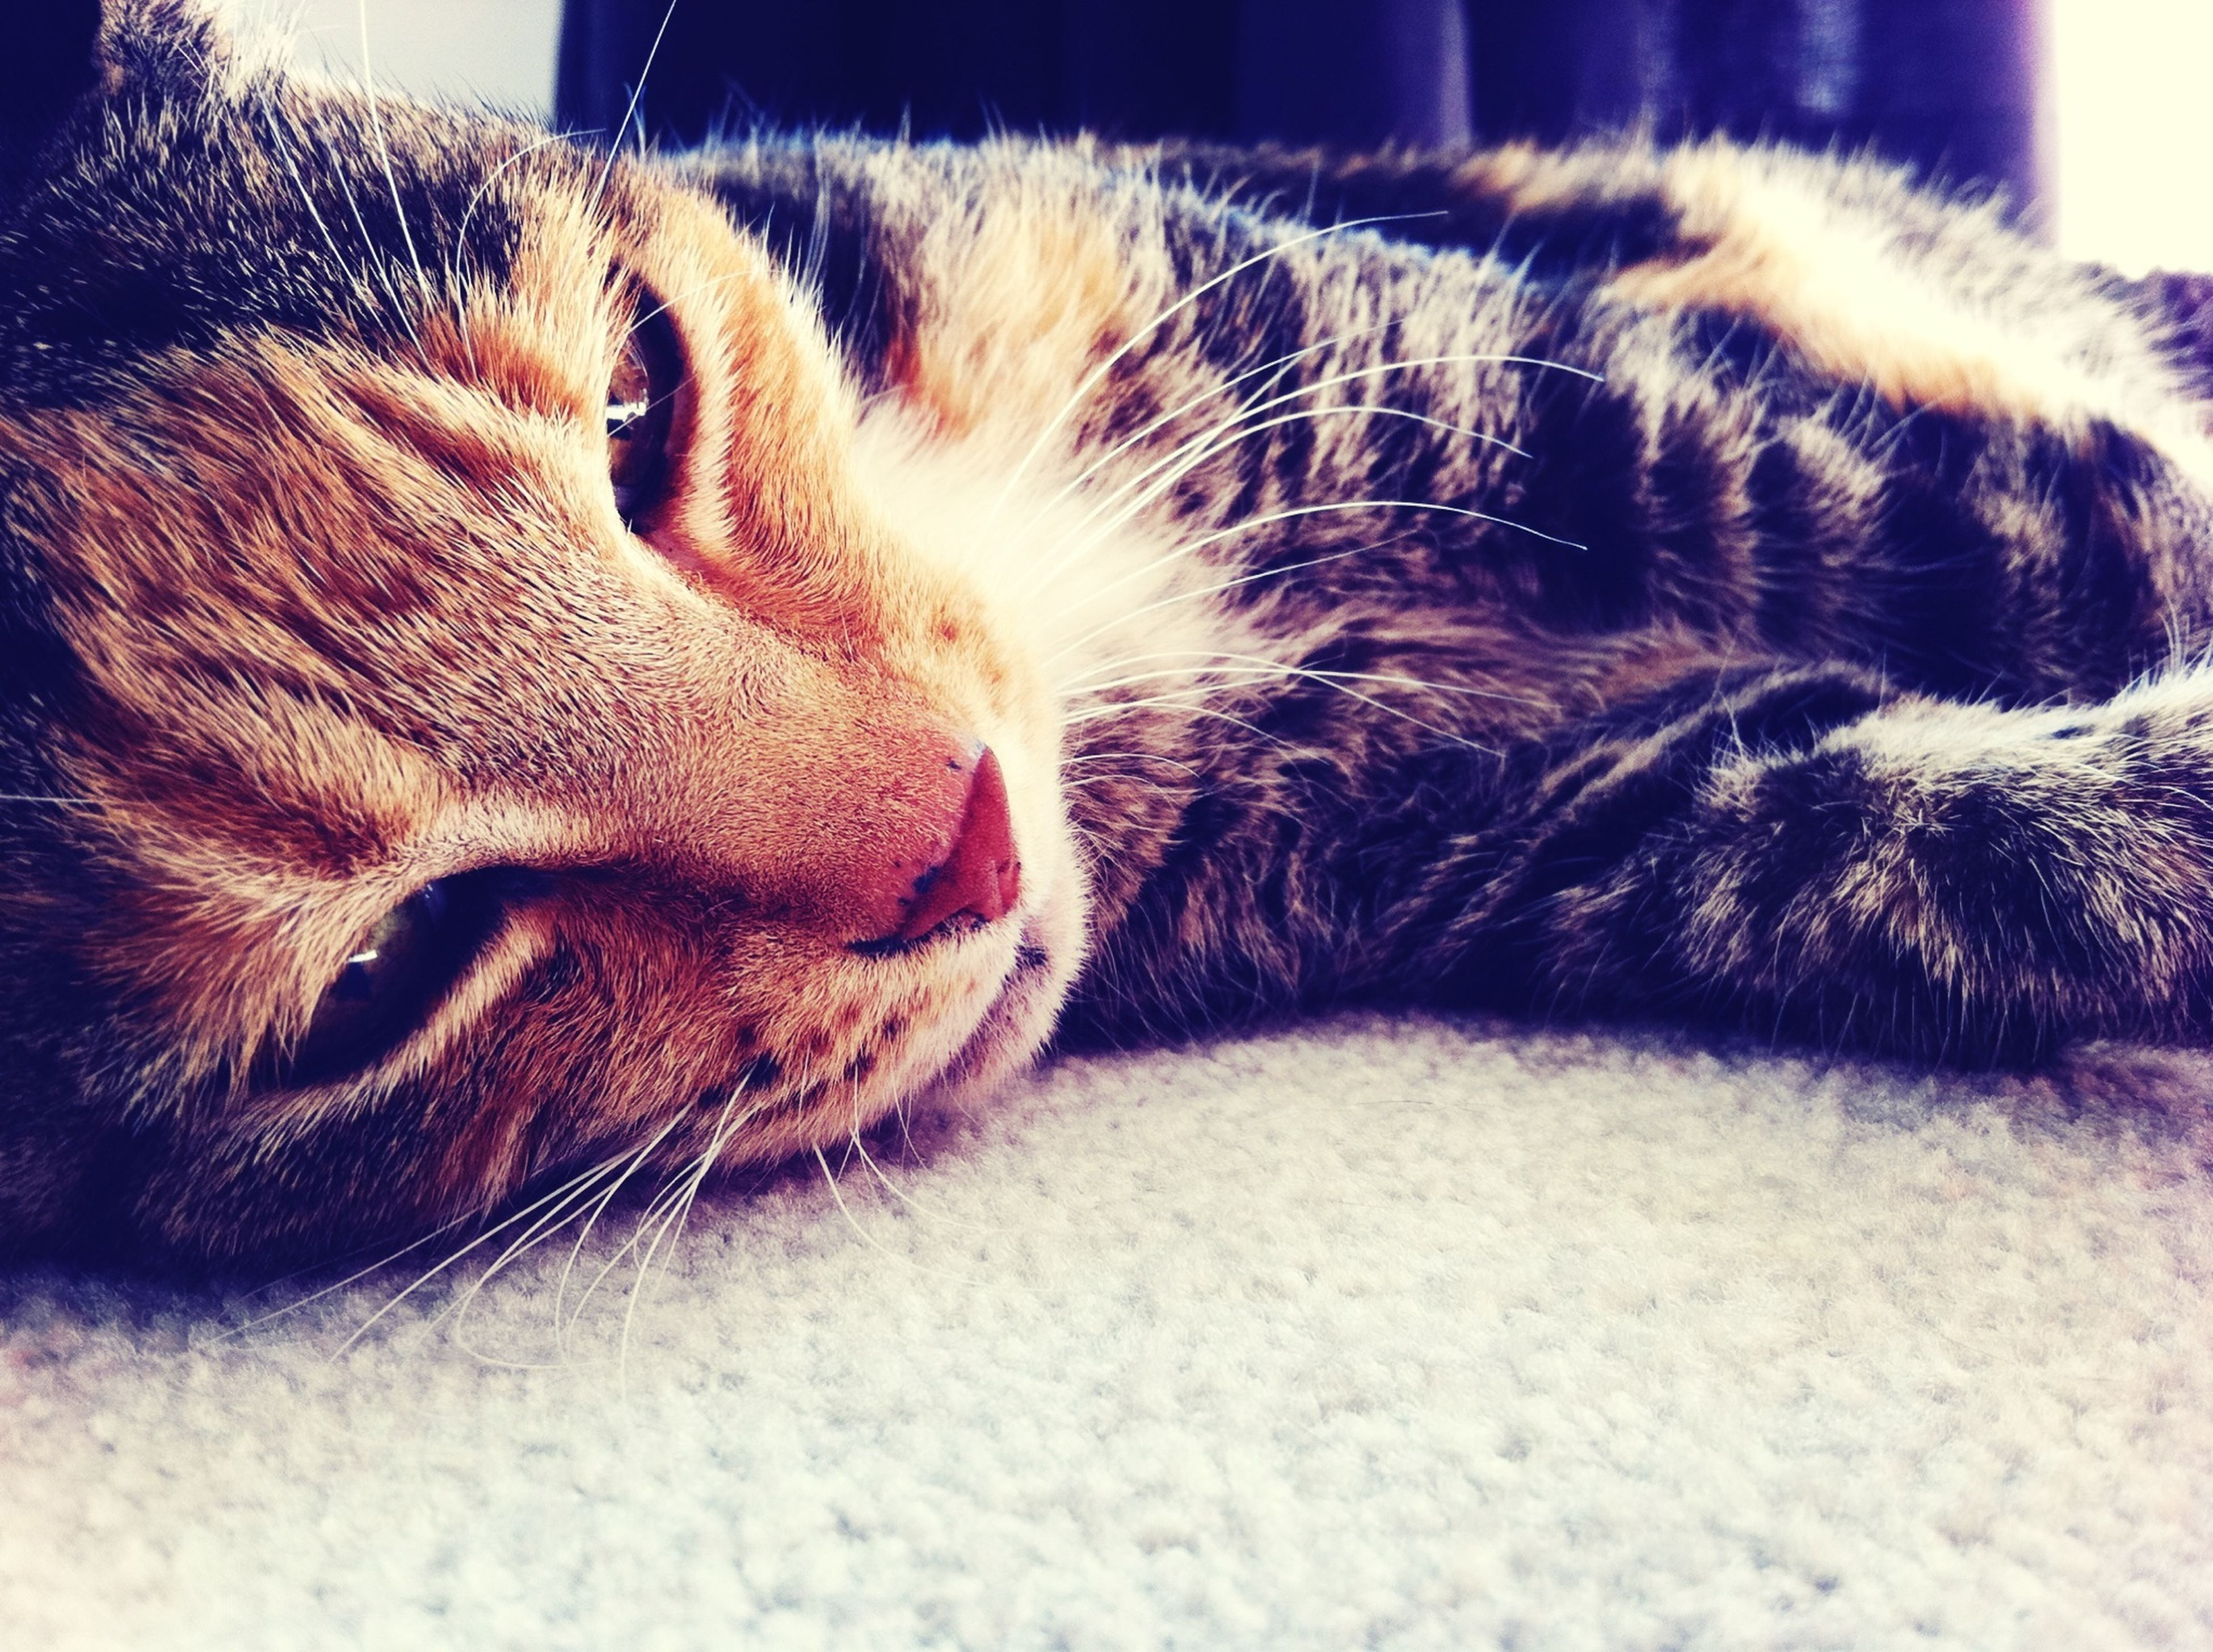 domestic animals, pets, domestic cat, mammal, one animal, animal themes, cat, feline, indoors, relaxation, whisker, close-up, sleeping, resting, eyes closed, lying down, animal head, animal body part, no people, home interior